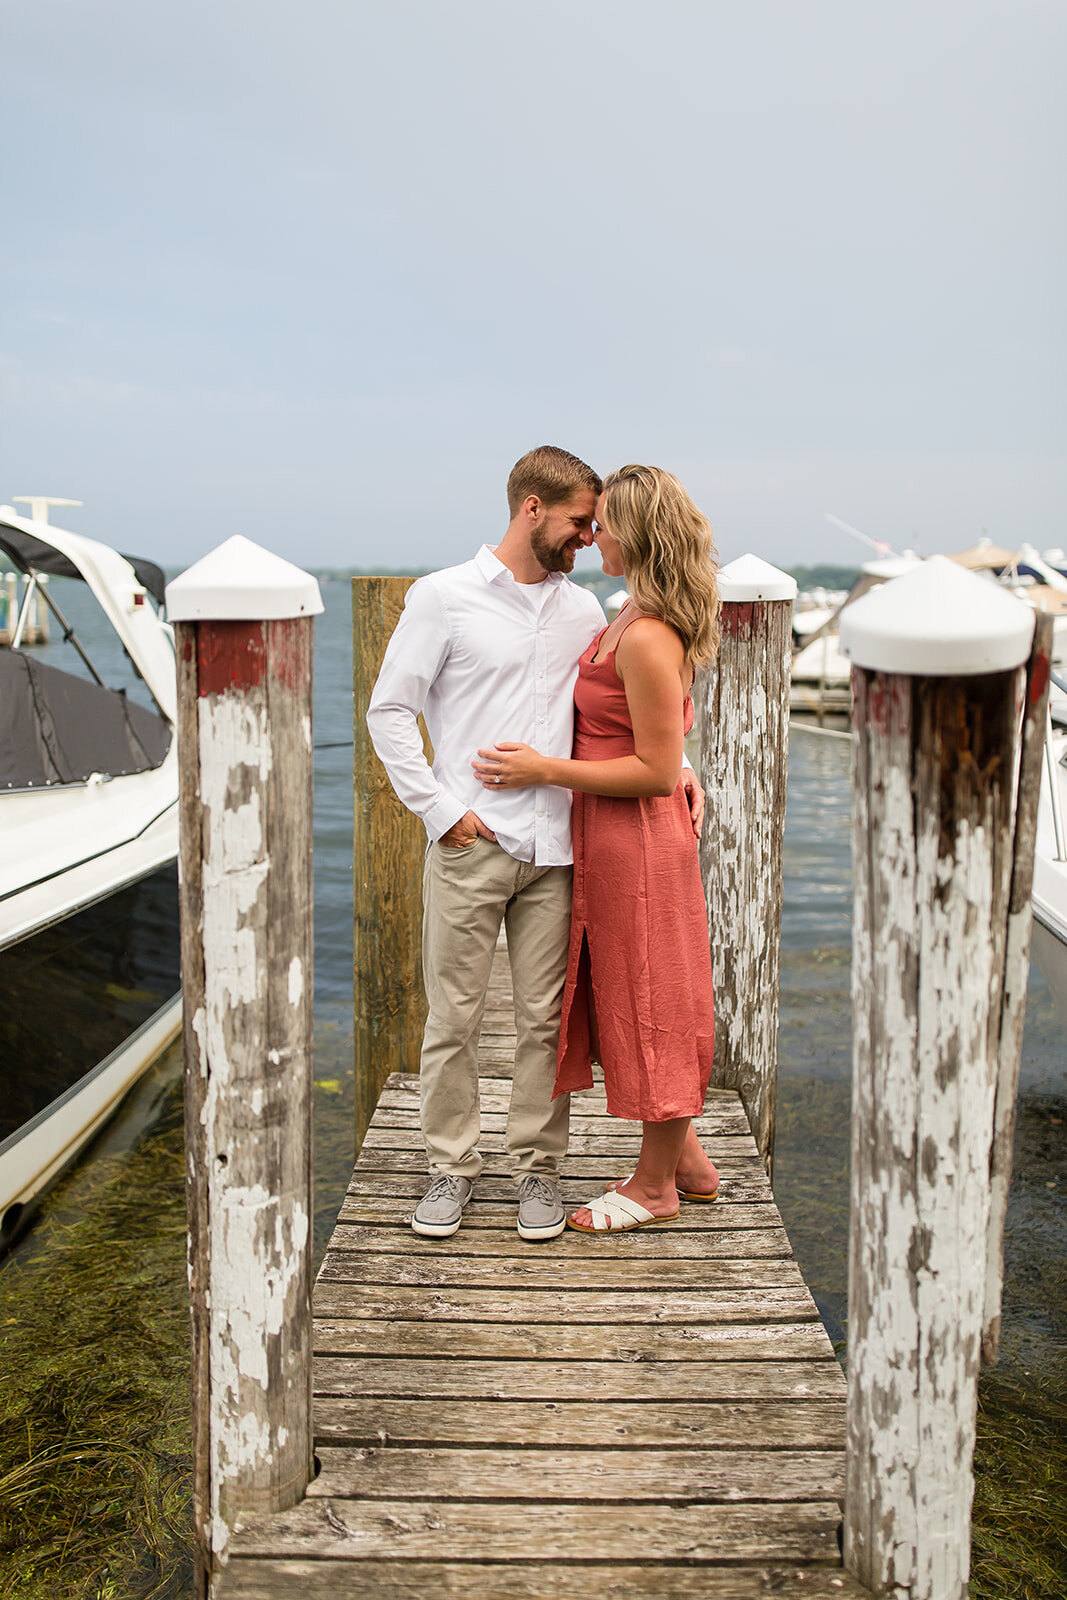 Brynn-Wheatley-Photography-2020-Brandon-Hana-Engagement-LG-82_websize